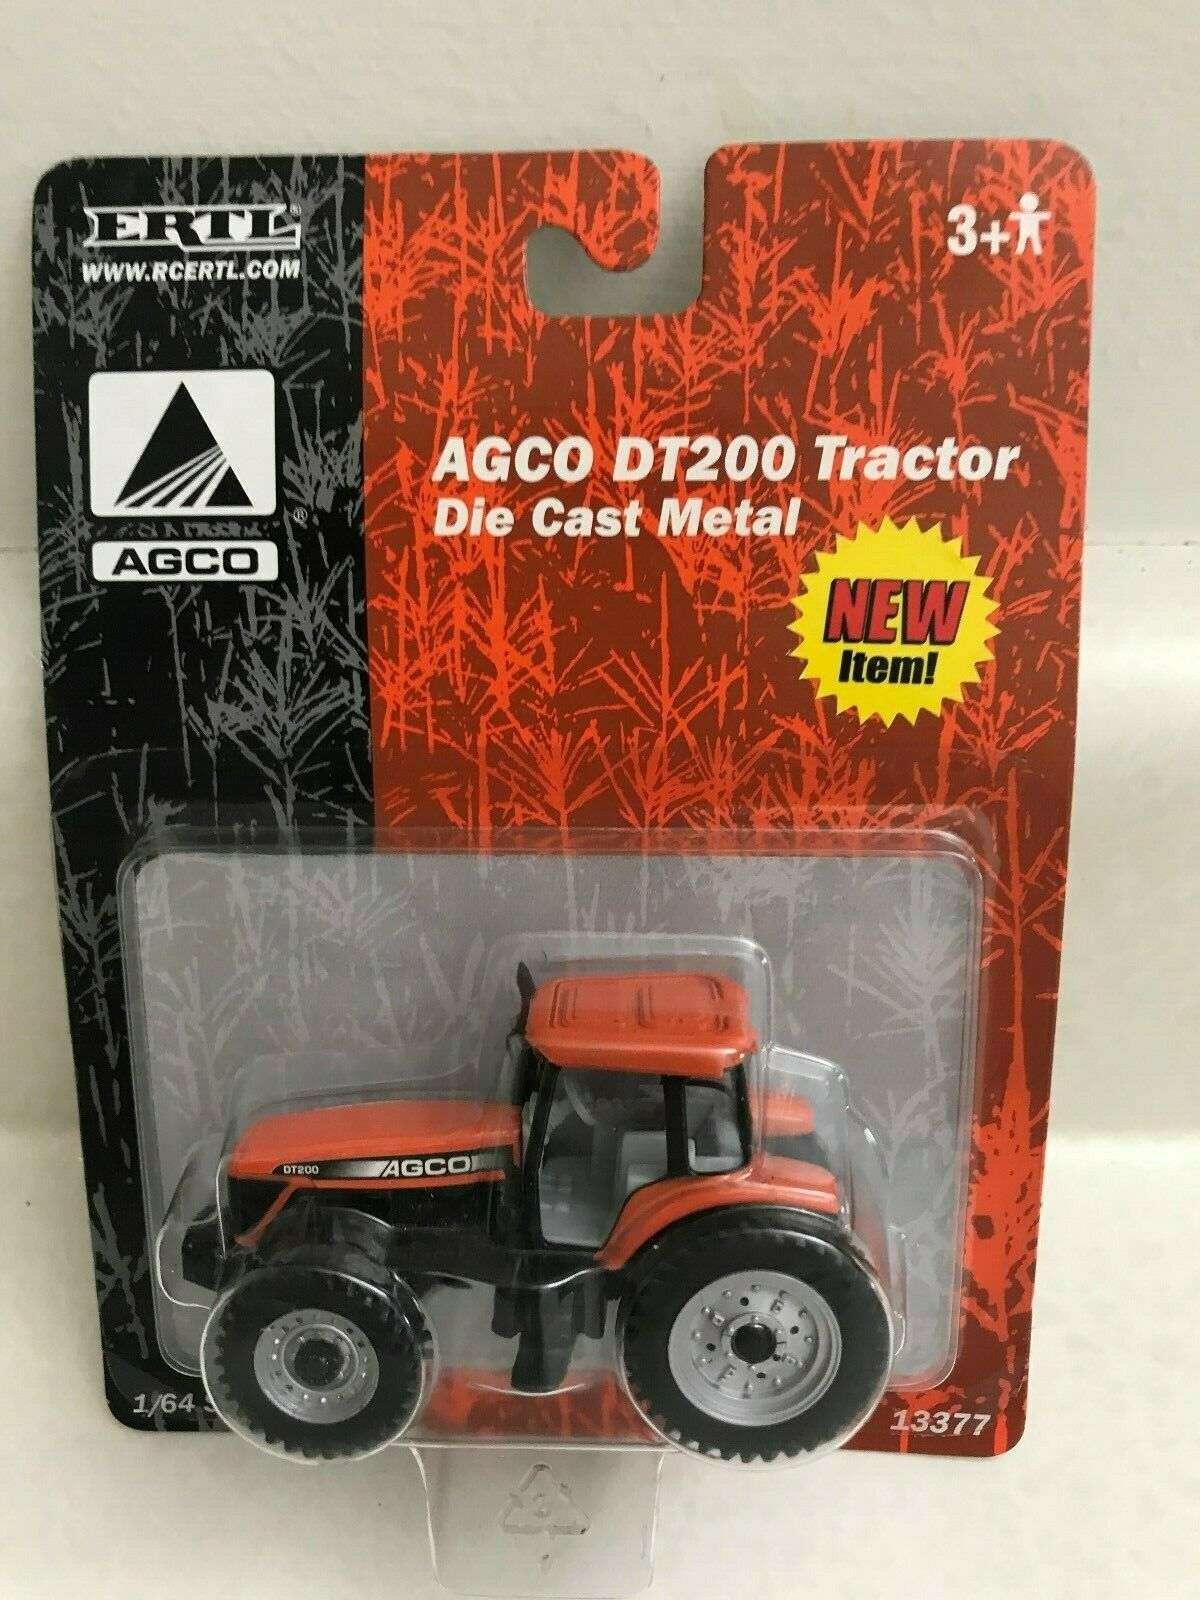 AGCO DT200 Tractor wf fwa 1/64 scale # 13377